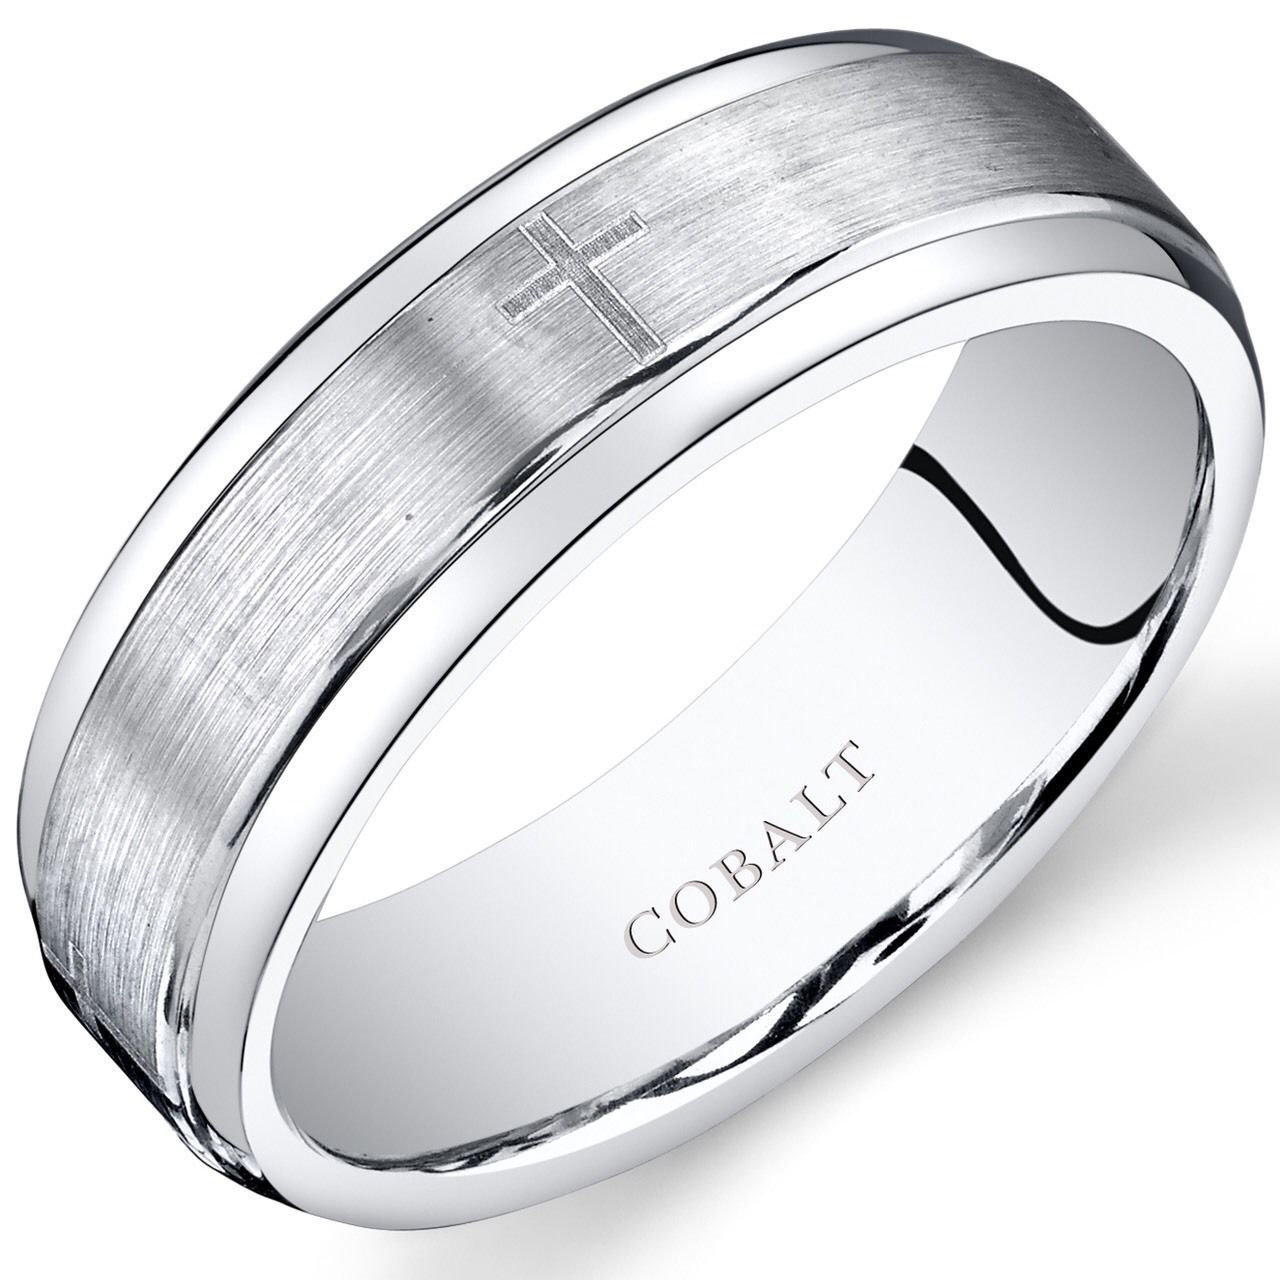 Mens 7mm Cobalt Wedding Band Ring w/ Cross Design and